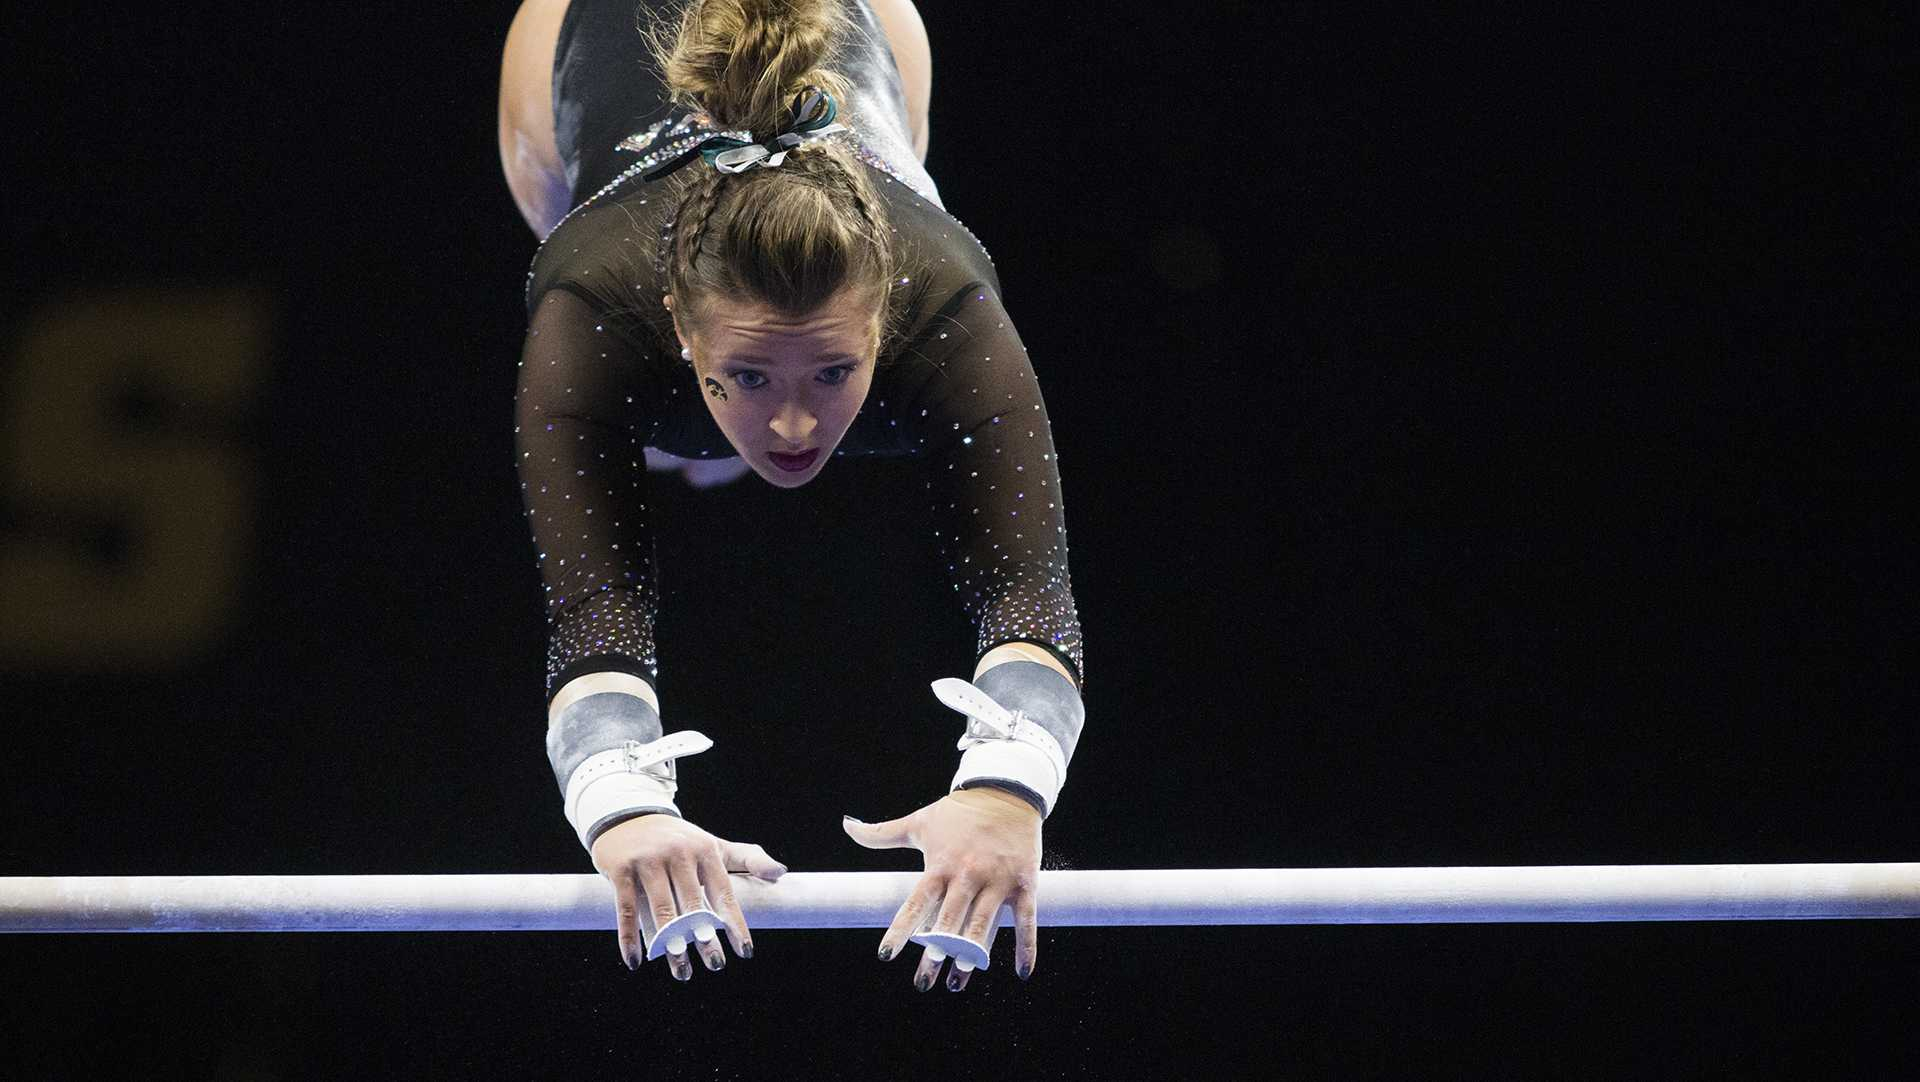 Iowa's Maddie Kampshroeder performs on the uneven bars during the Iowa/Southeast Missouri State gymnastics meet at Carver-Hawkeye Arena on Friday, Mar. 02, 2018. Kampshroeder scored a 9.775. The GymHawks defeated the Redhawks, 195.550-192.750. (Katina Zentz/ The Daily Iowan)